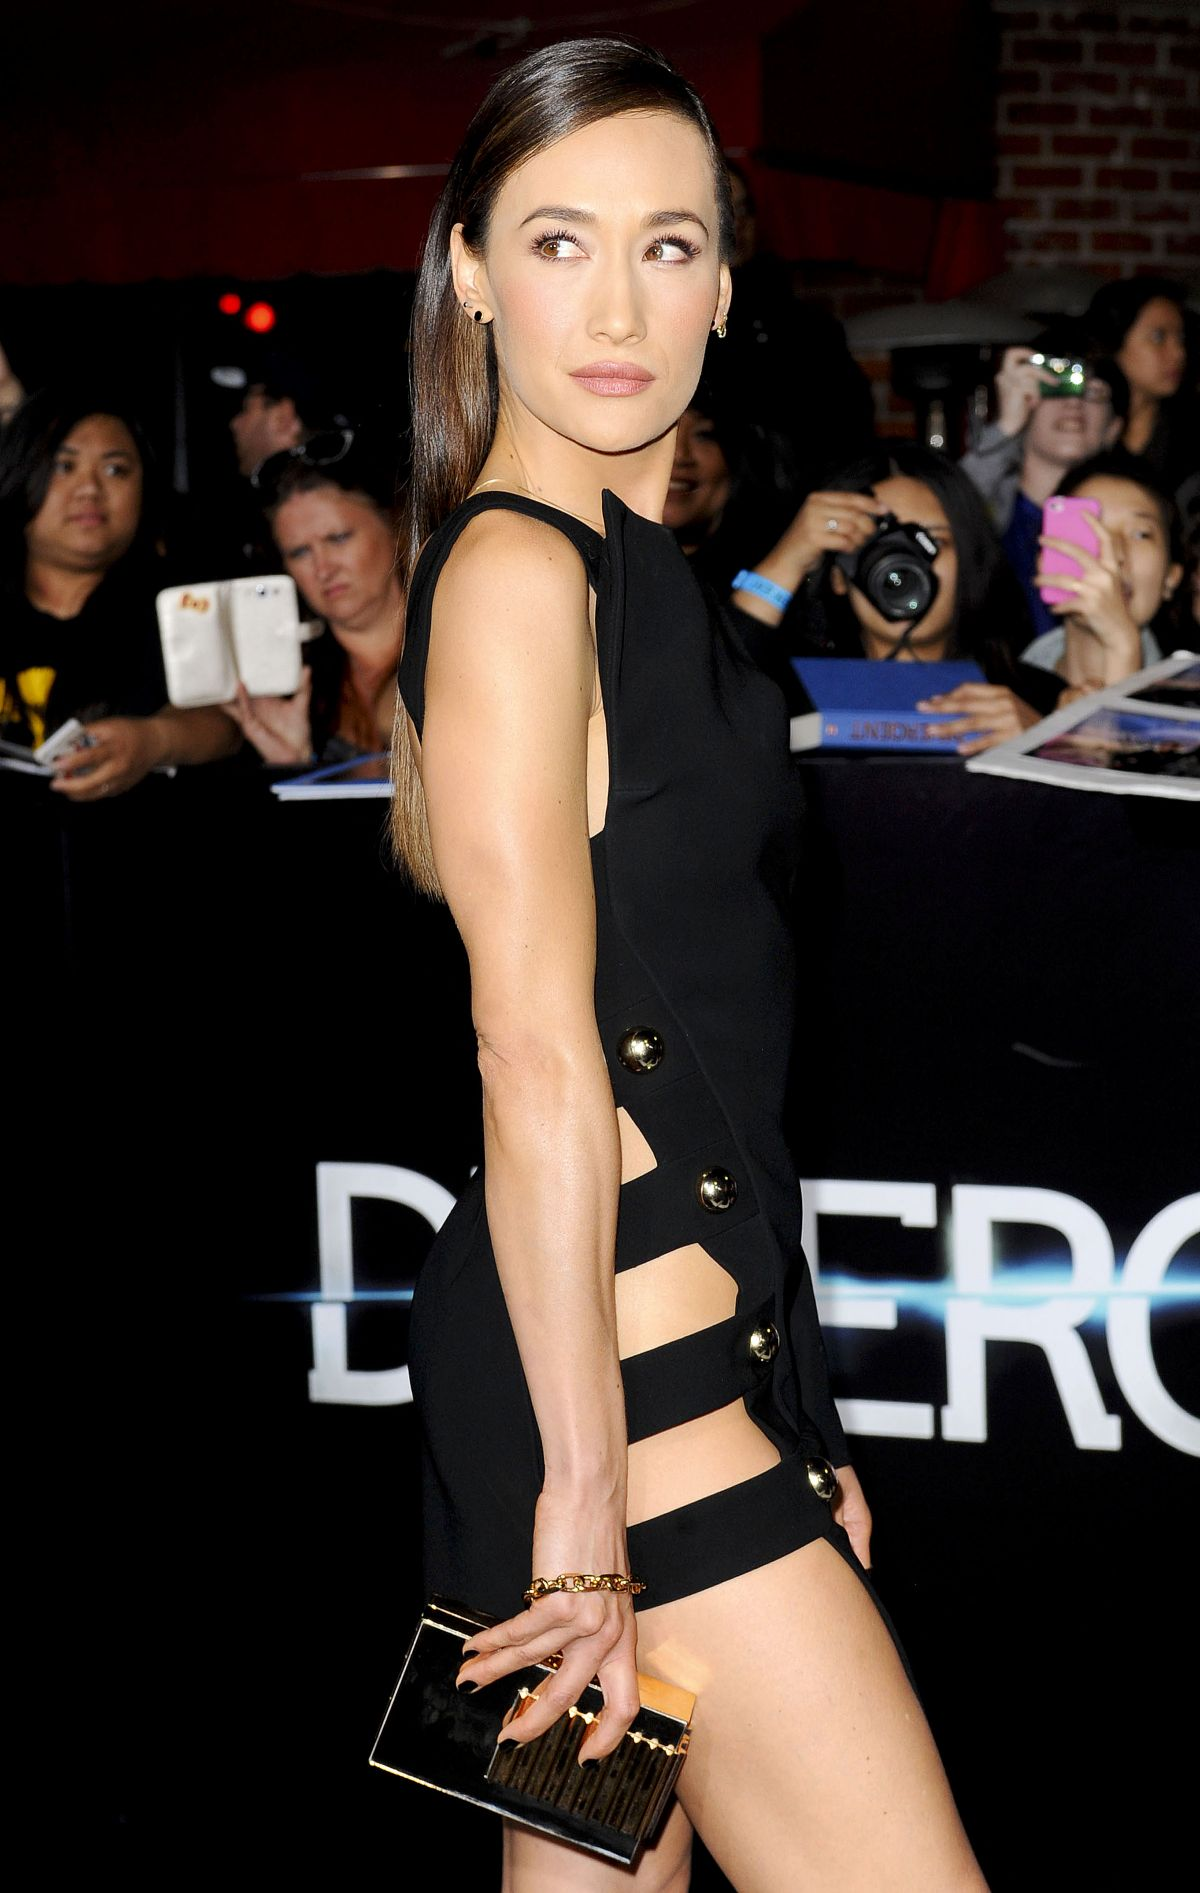 MAGGIE Q at Divergent Premiere in Los Angeles - HawtCelebs ... Lovato